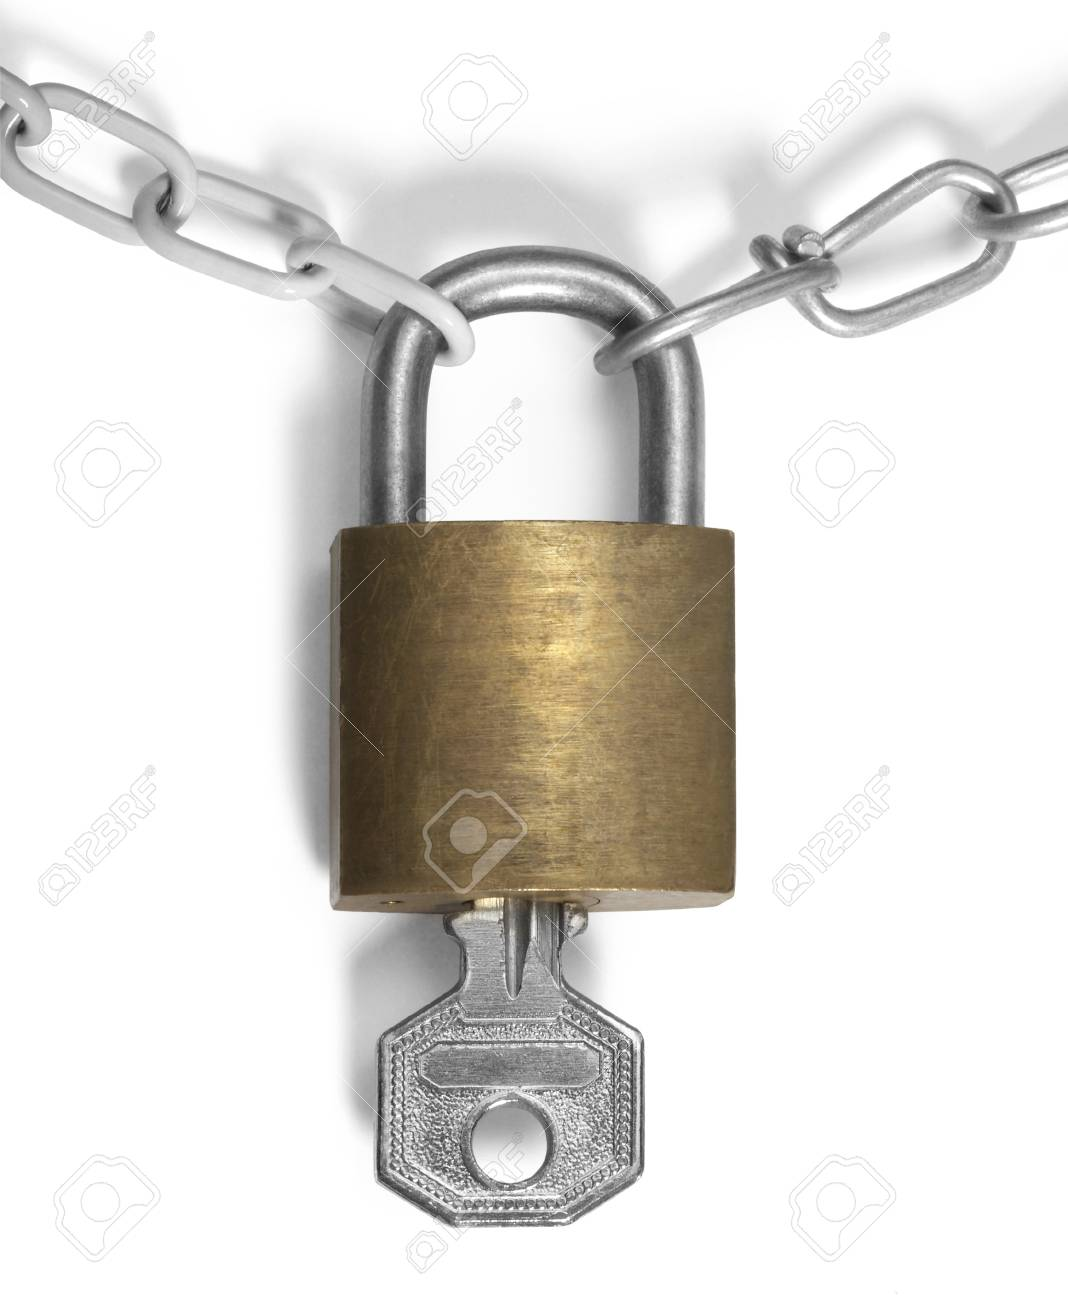 studio photography of a padlock and chains Stock Photo - 10914508